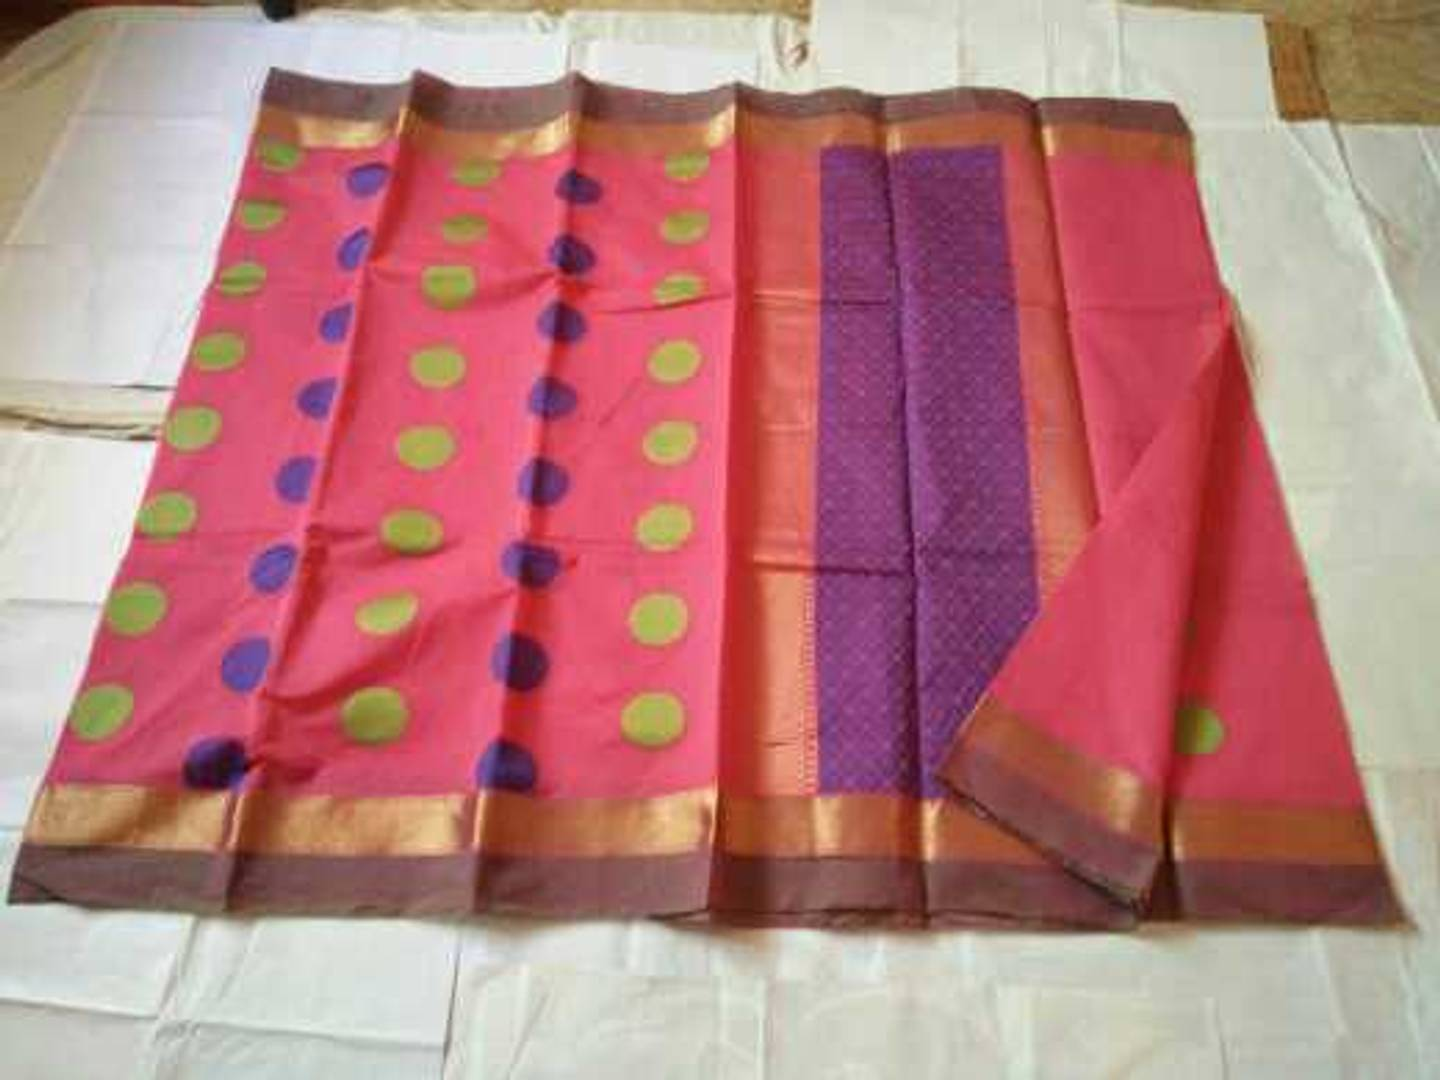 Silk Cotton Material Plain Saree Price 1000 Saranya Charu Chennai For Sale Looking For Resellers